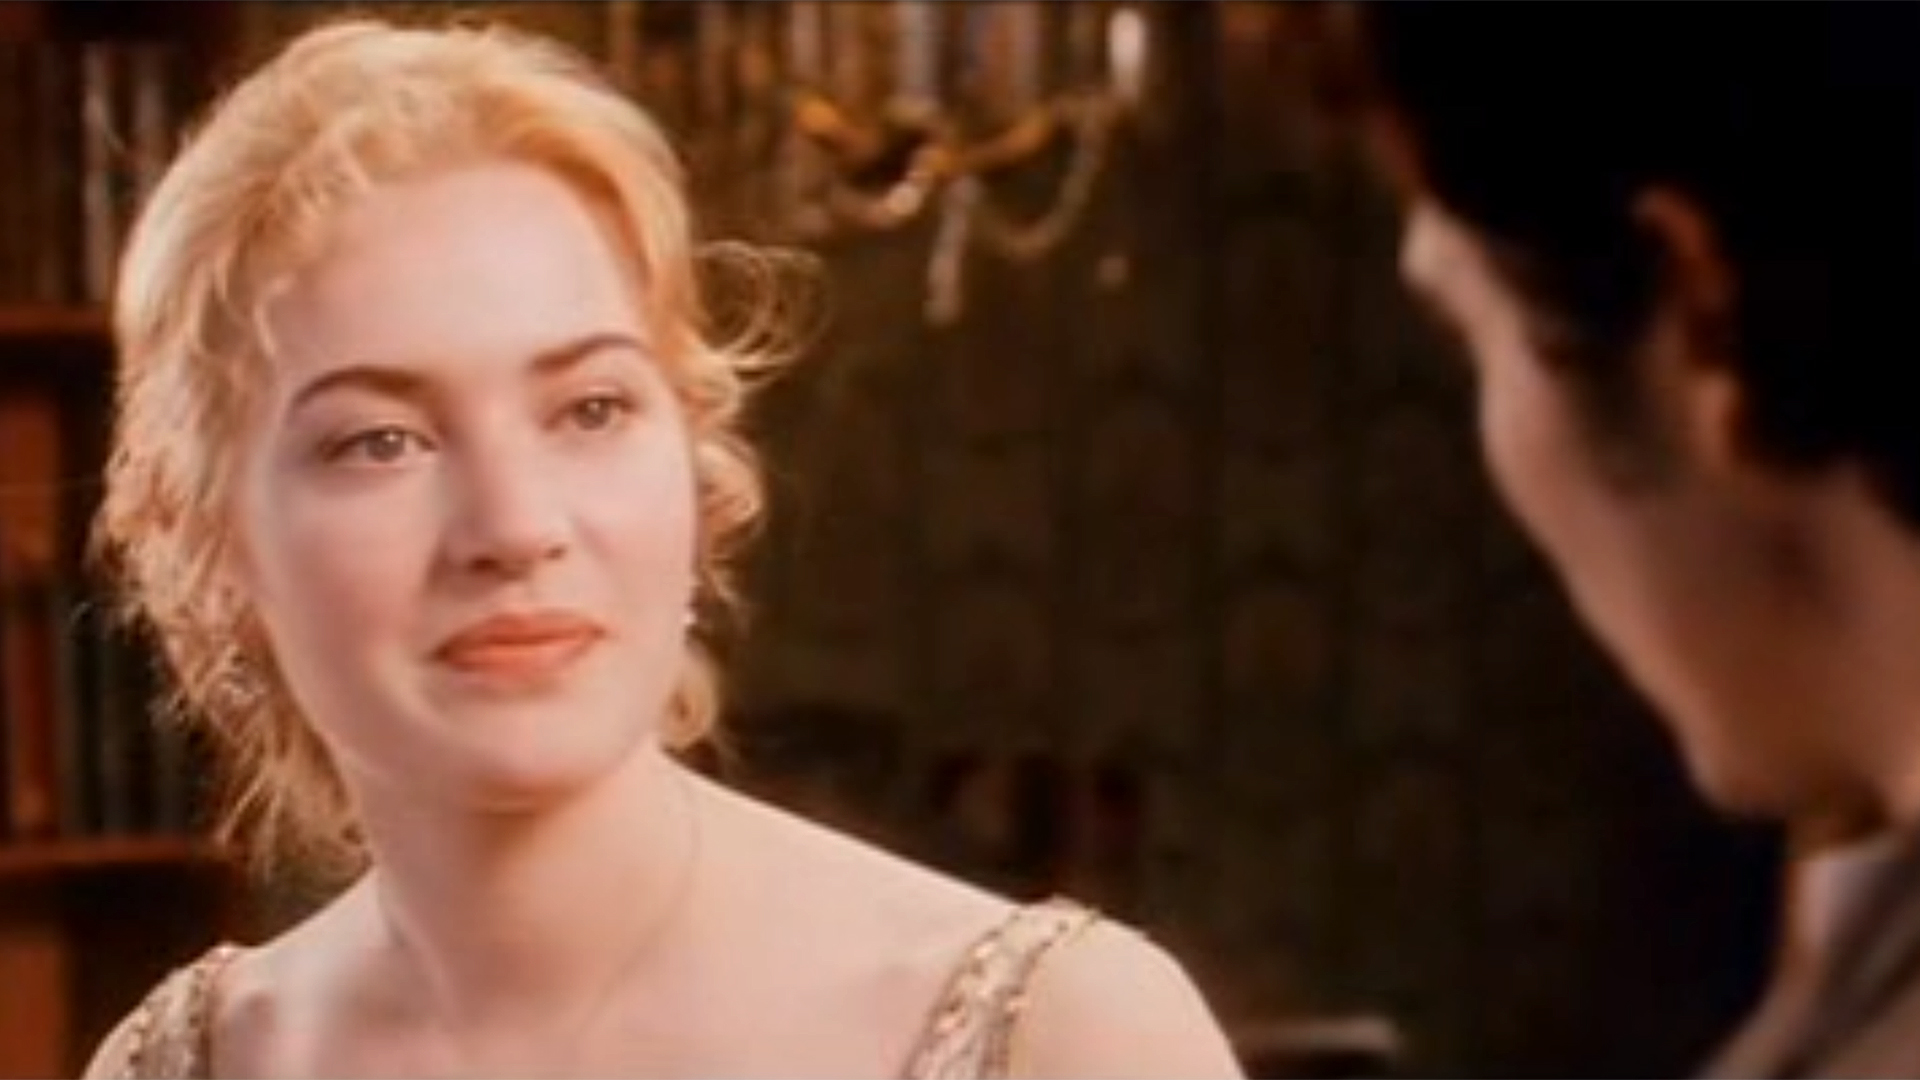 kate winslet's screen test for 'titanic' is magic. but who plays jack?